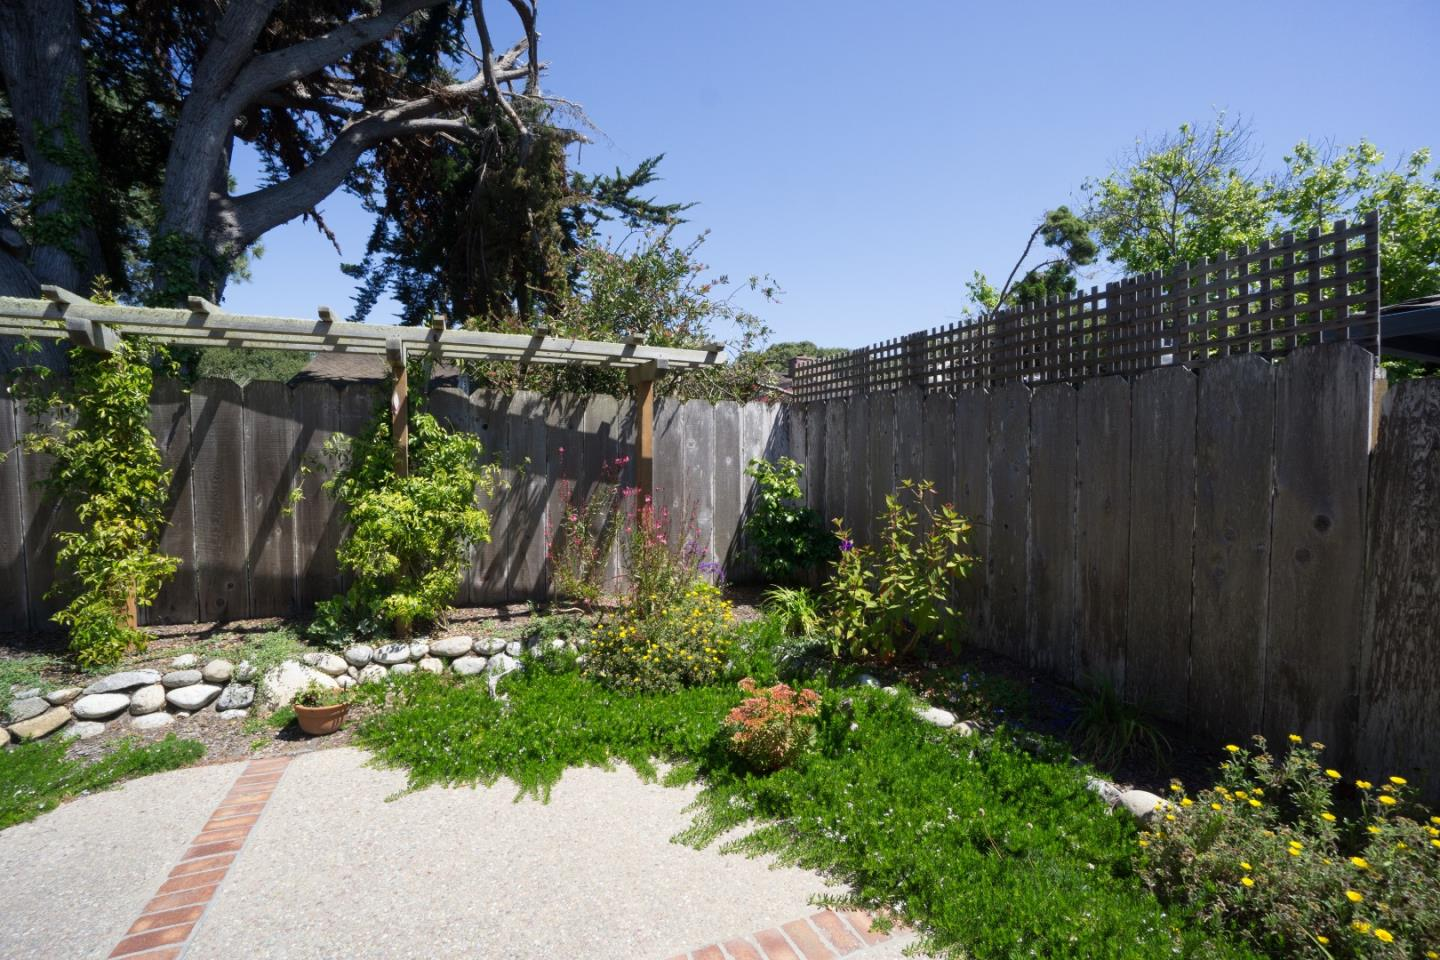 Additional photo for property listing at 811 Walnut Street 811 Walnut Street Pacific Grove, California 93950 Estados Unidos